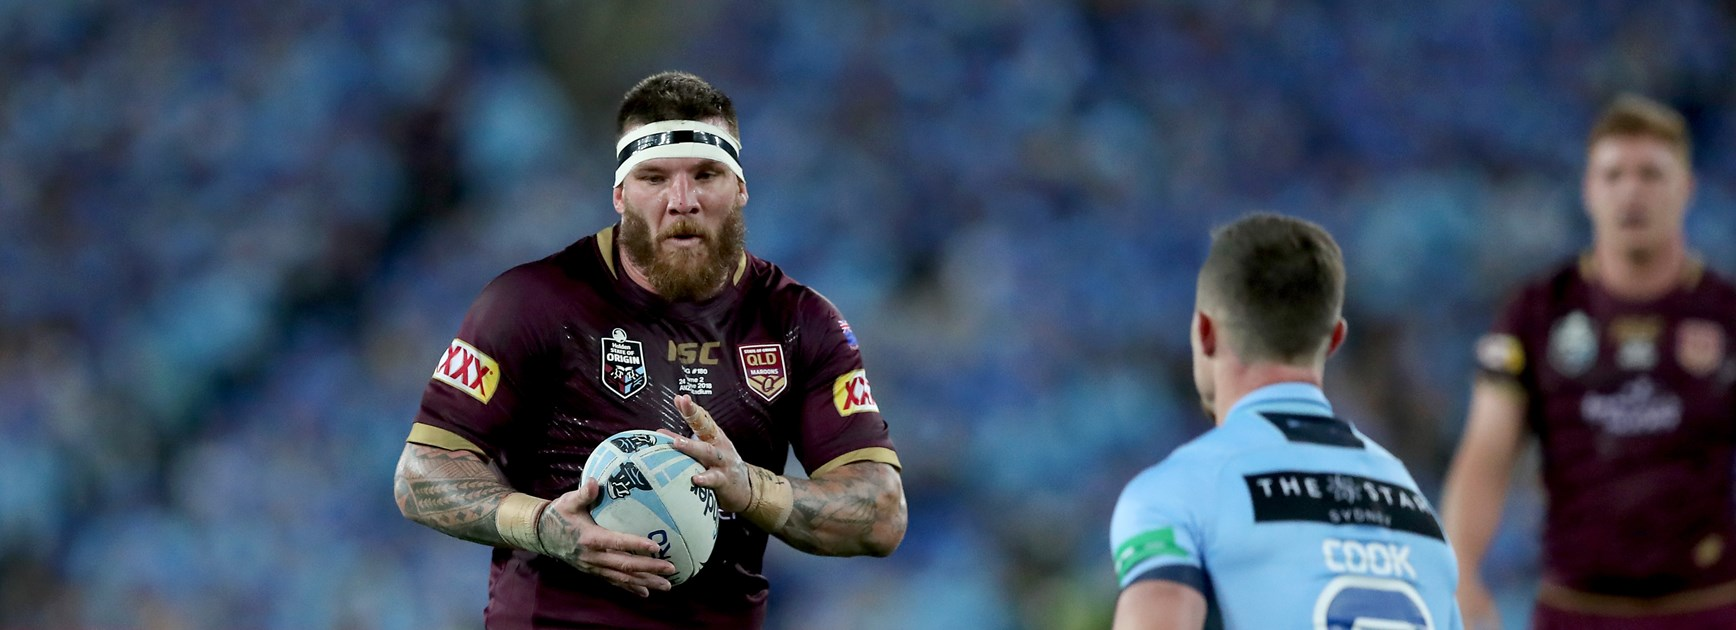 Renouf's Maroons side: I'd bring in young guns and hard heads